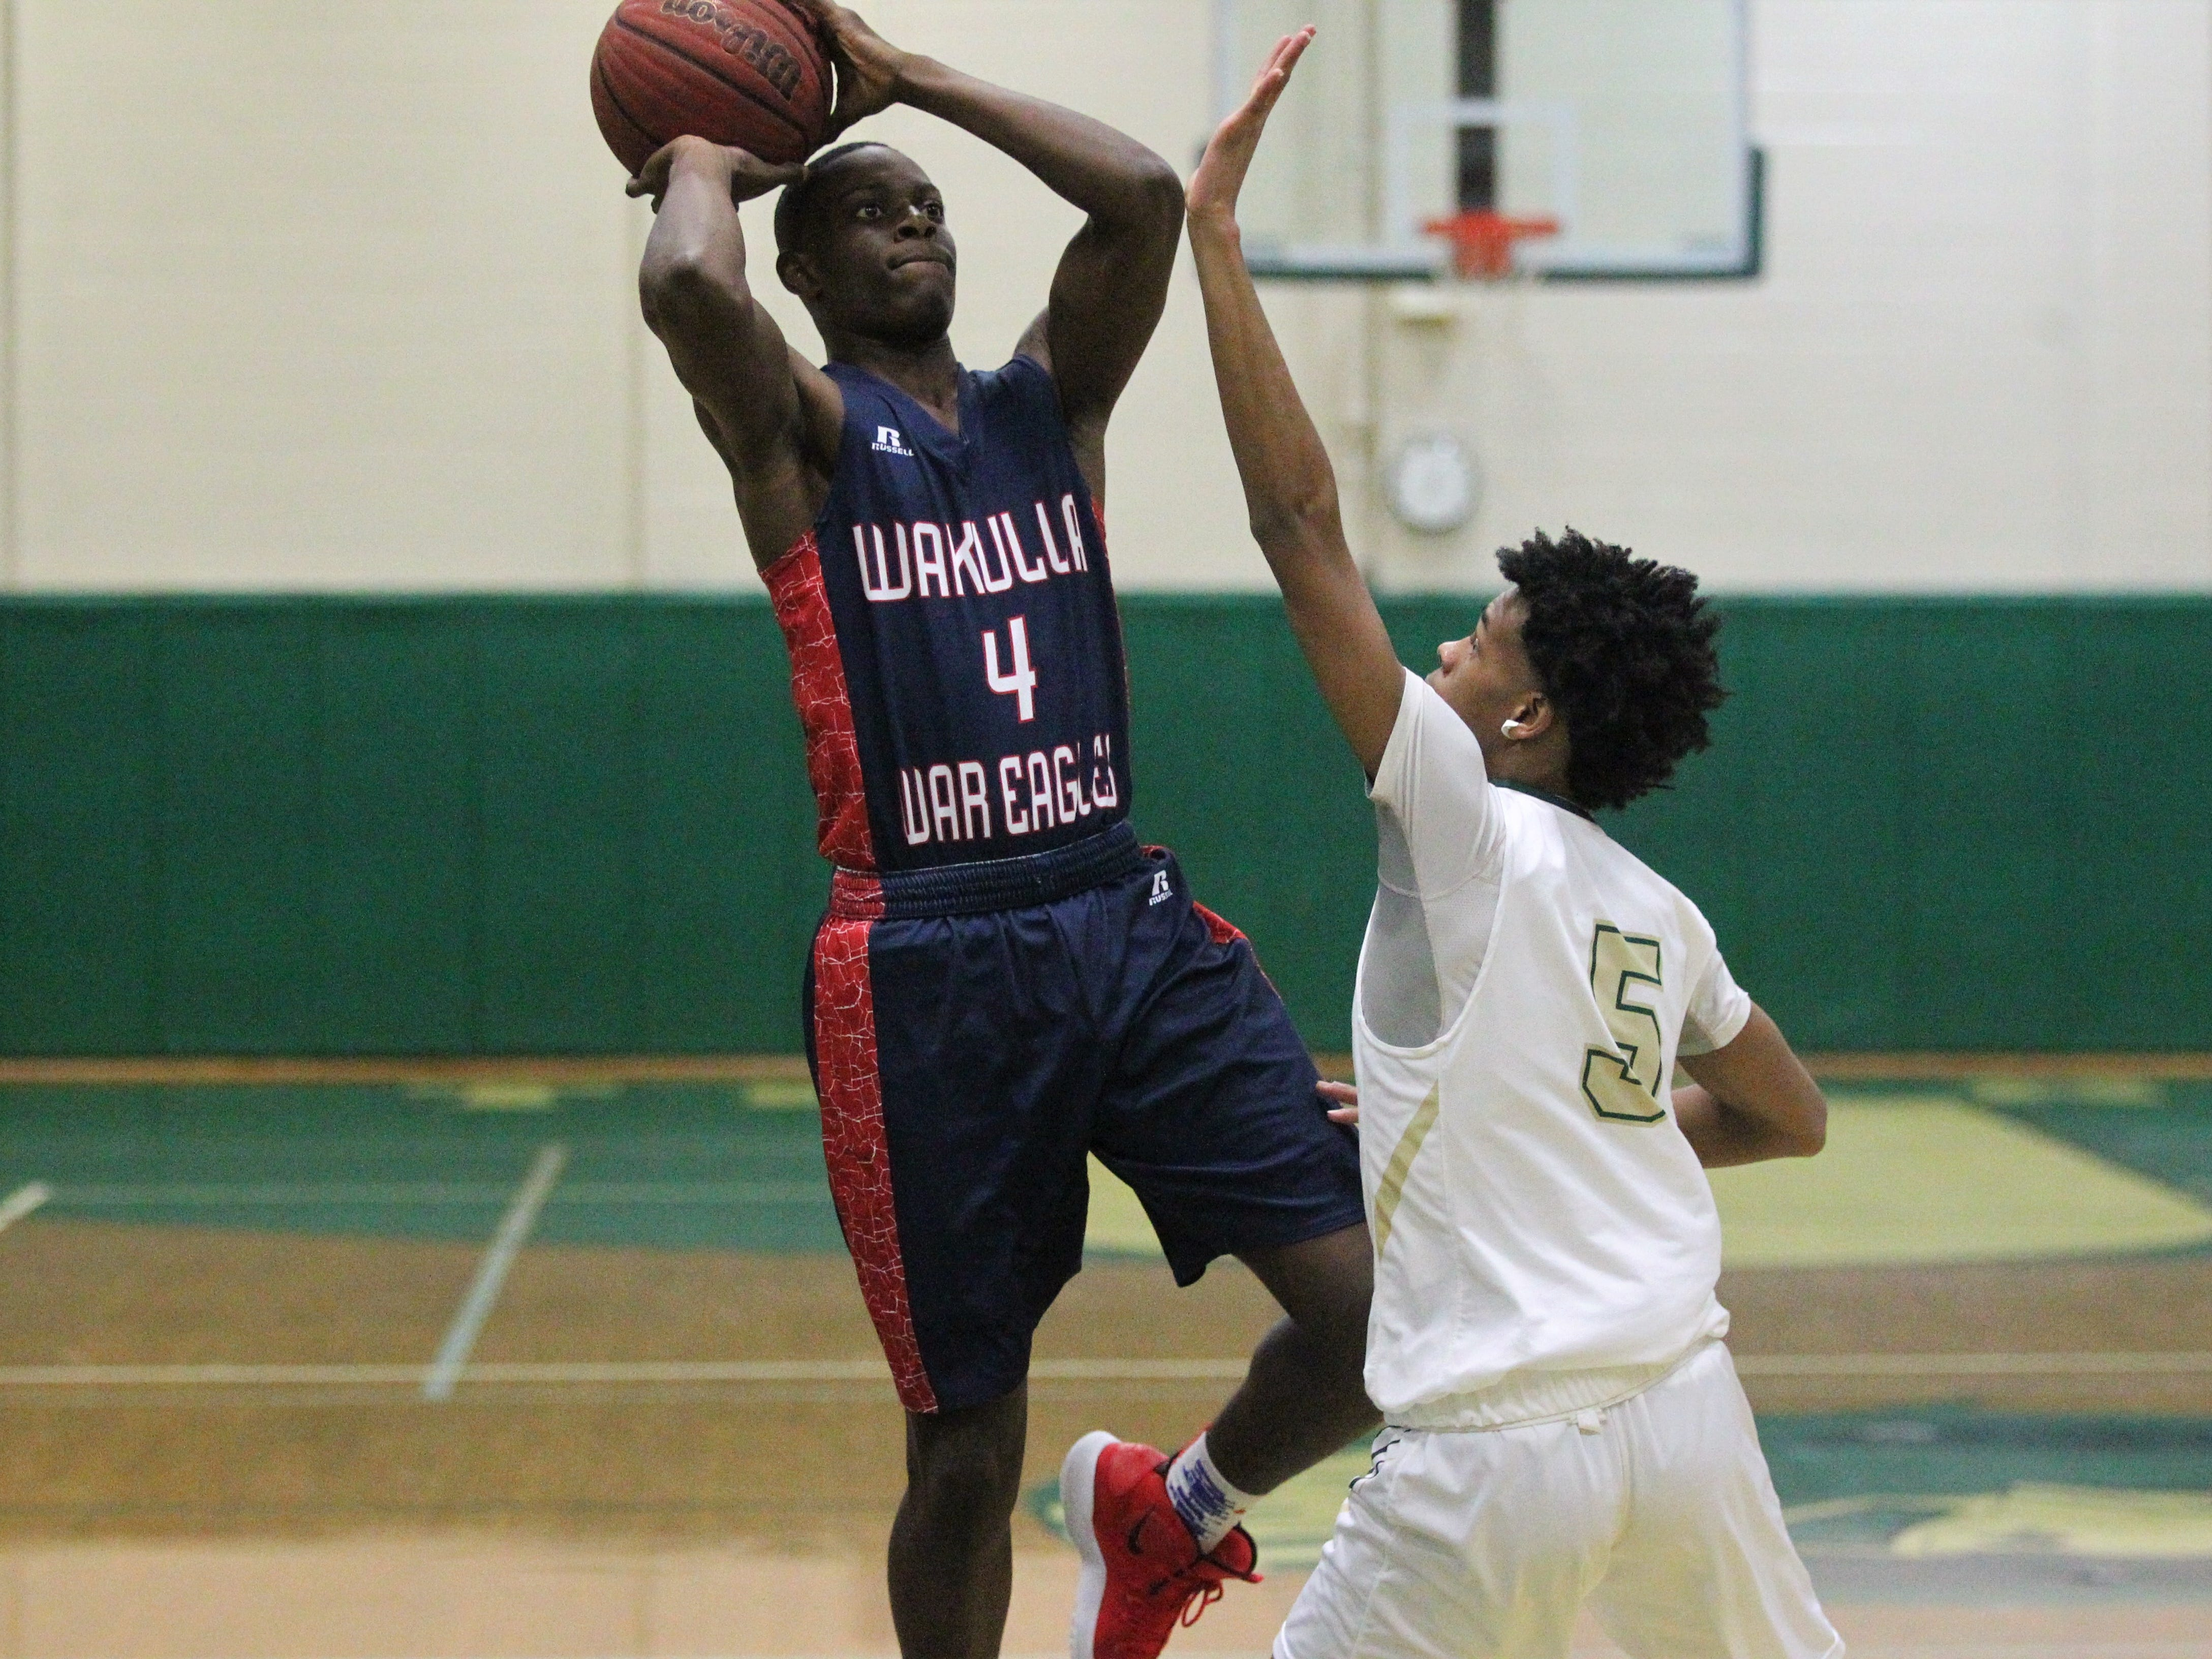 Wakulla's Trevon Hale takes an off-balance shot during Lincoln's 60-53 win on Jan. 10, 2019.